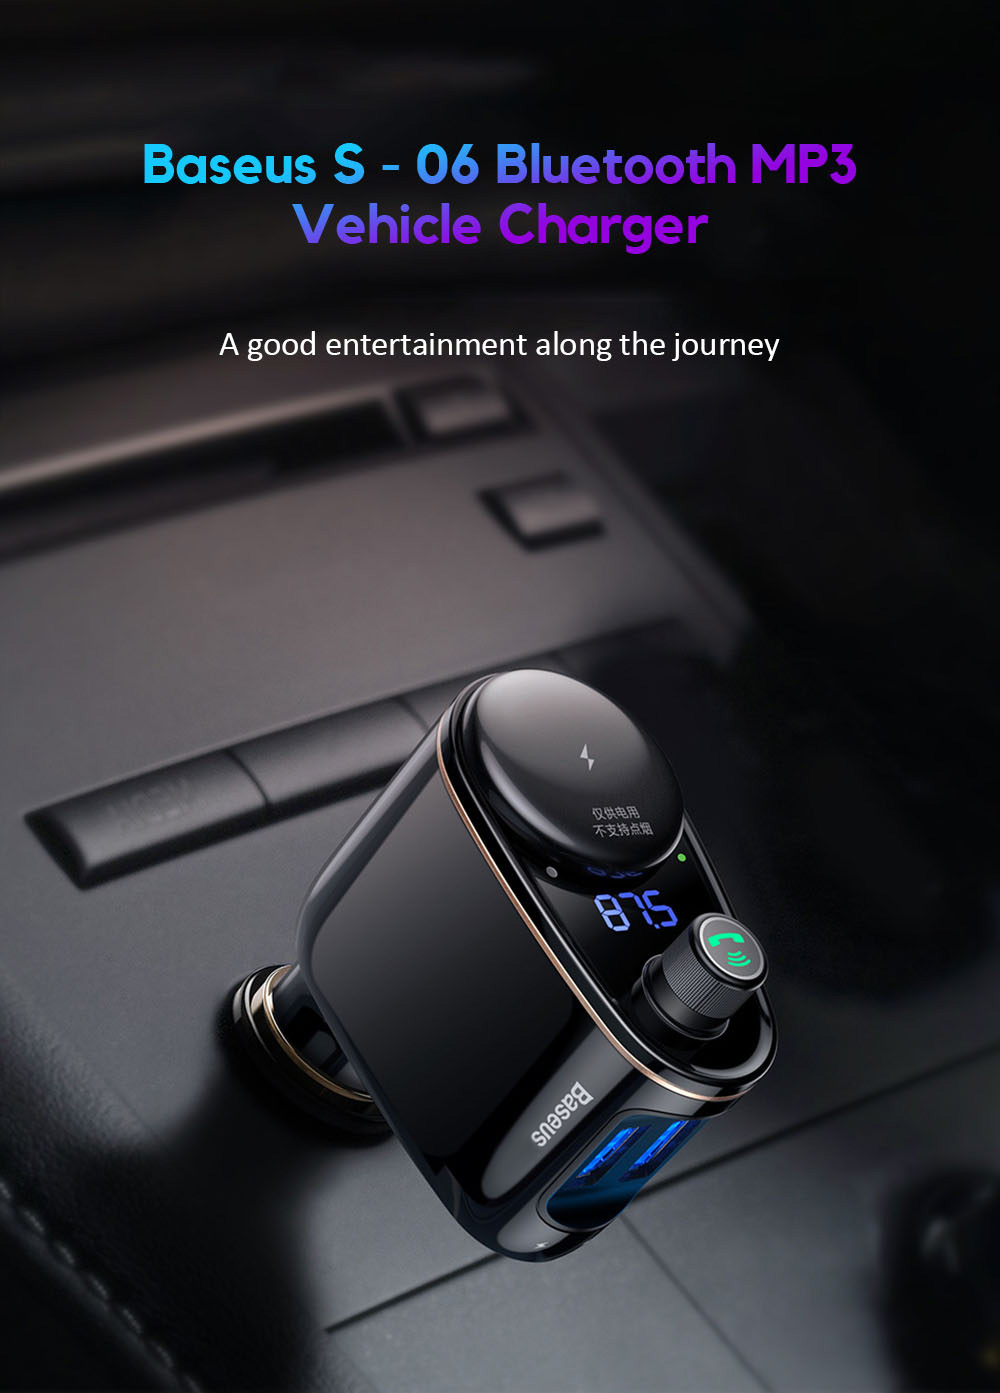 Baseus S - 06 Bluetooth MP3 Vehicle Dual USB Charger- Black